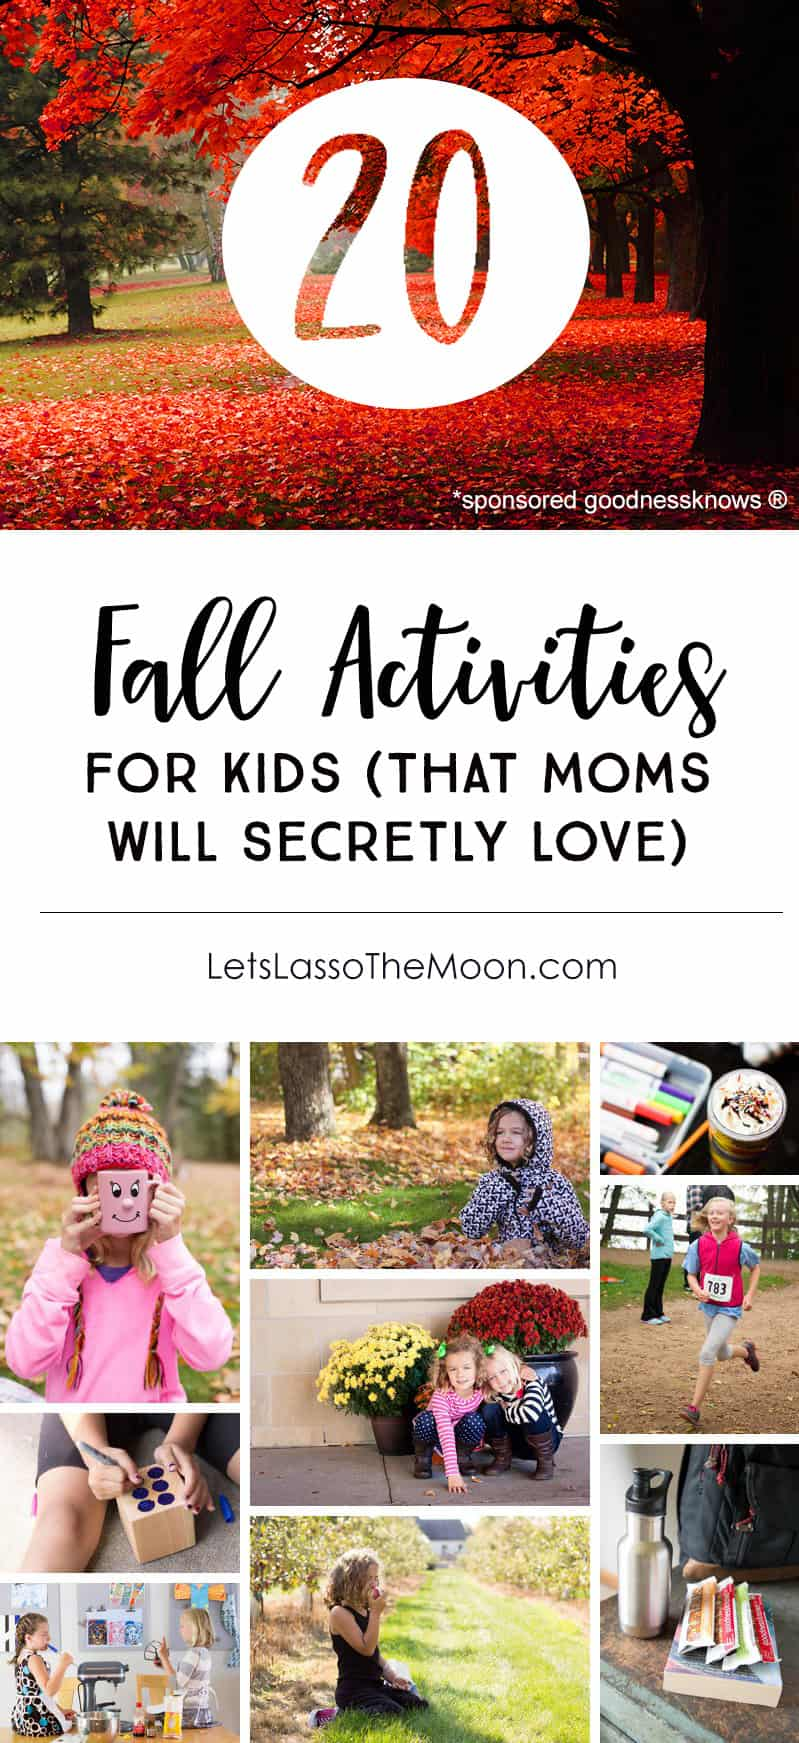 20 Fun Fall Activities For Kids That Moms Will Secretly Love: Unique and family-friendly autumn activities and children and adults will love *This is a great list. Saving it for later.